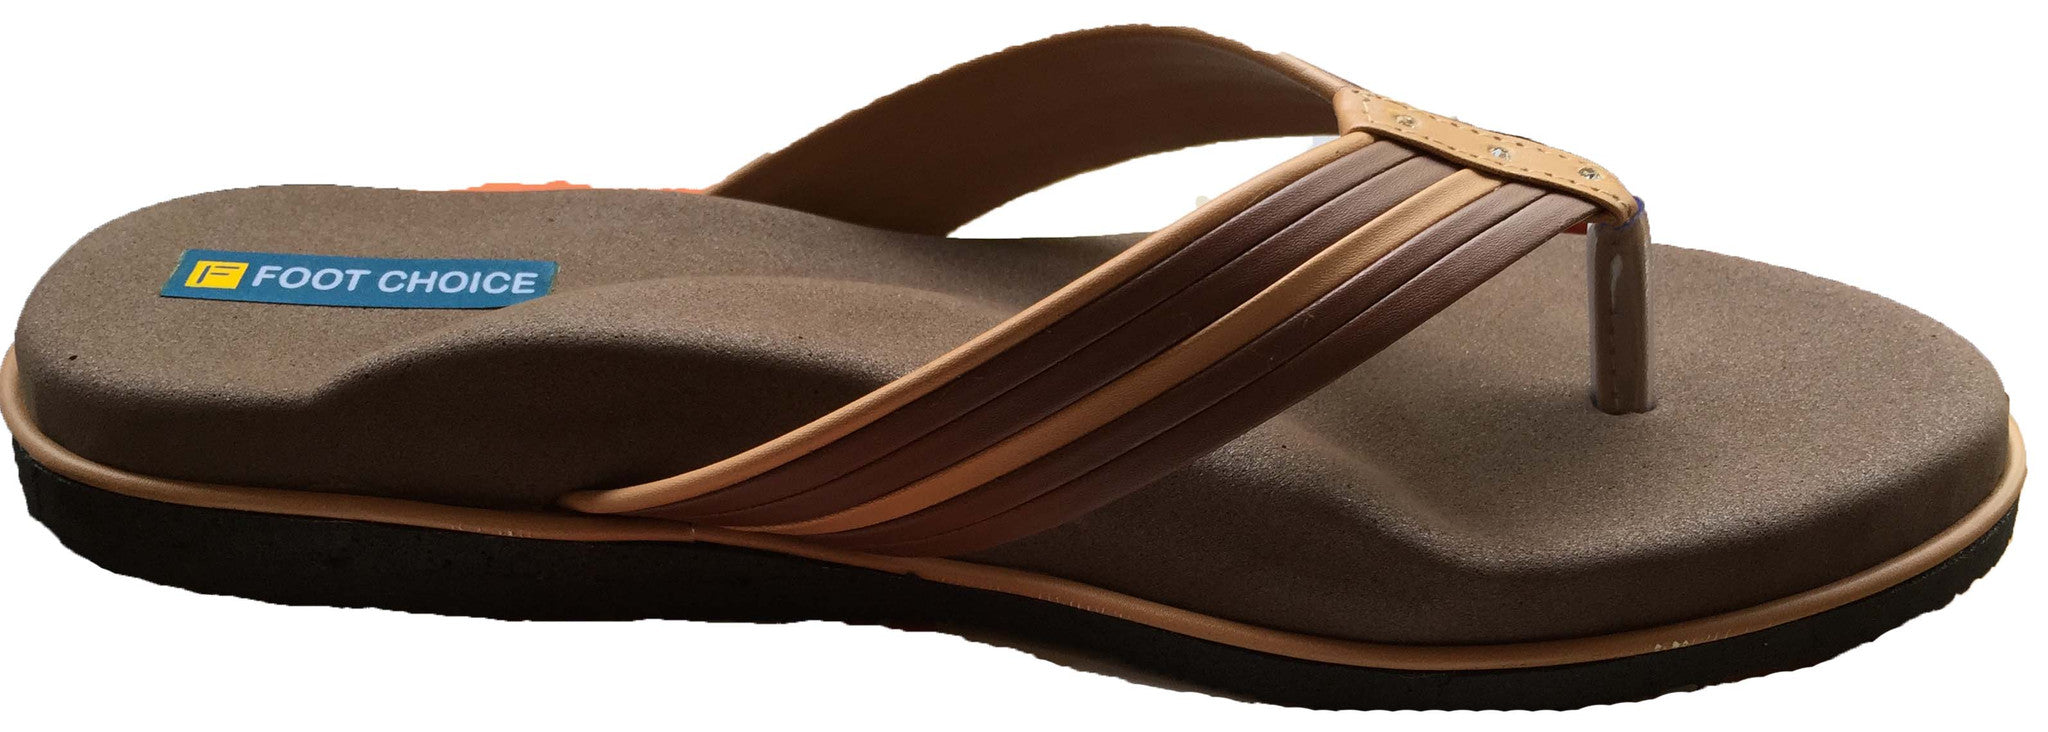 Womens sandals with arch support - Cromostyle Mcr Arch Support Slippers For Women Cs1109 Cromostyle Com 2